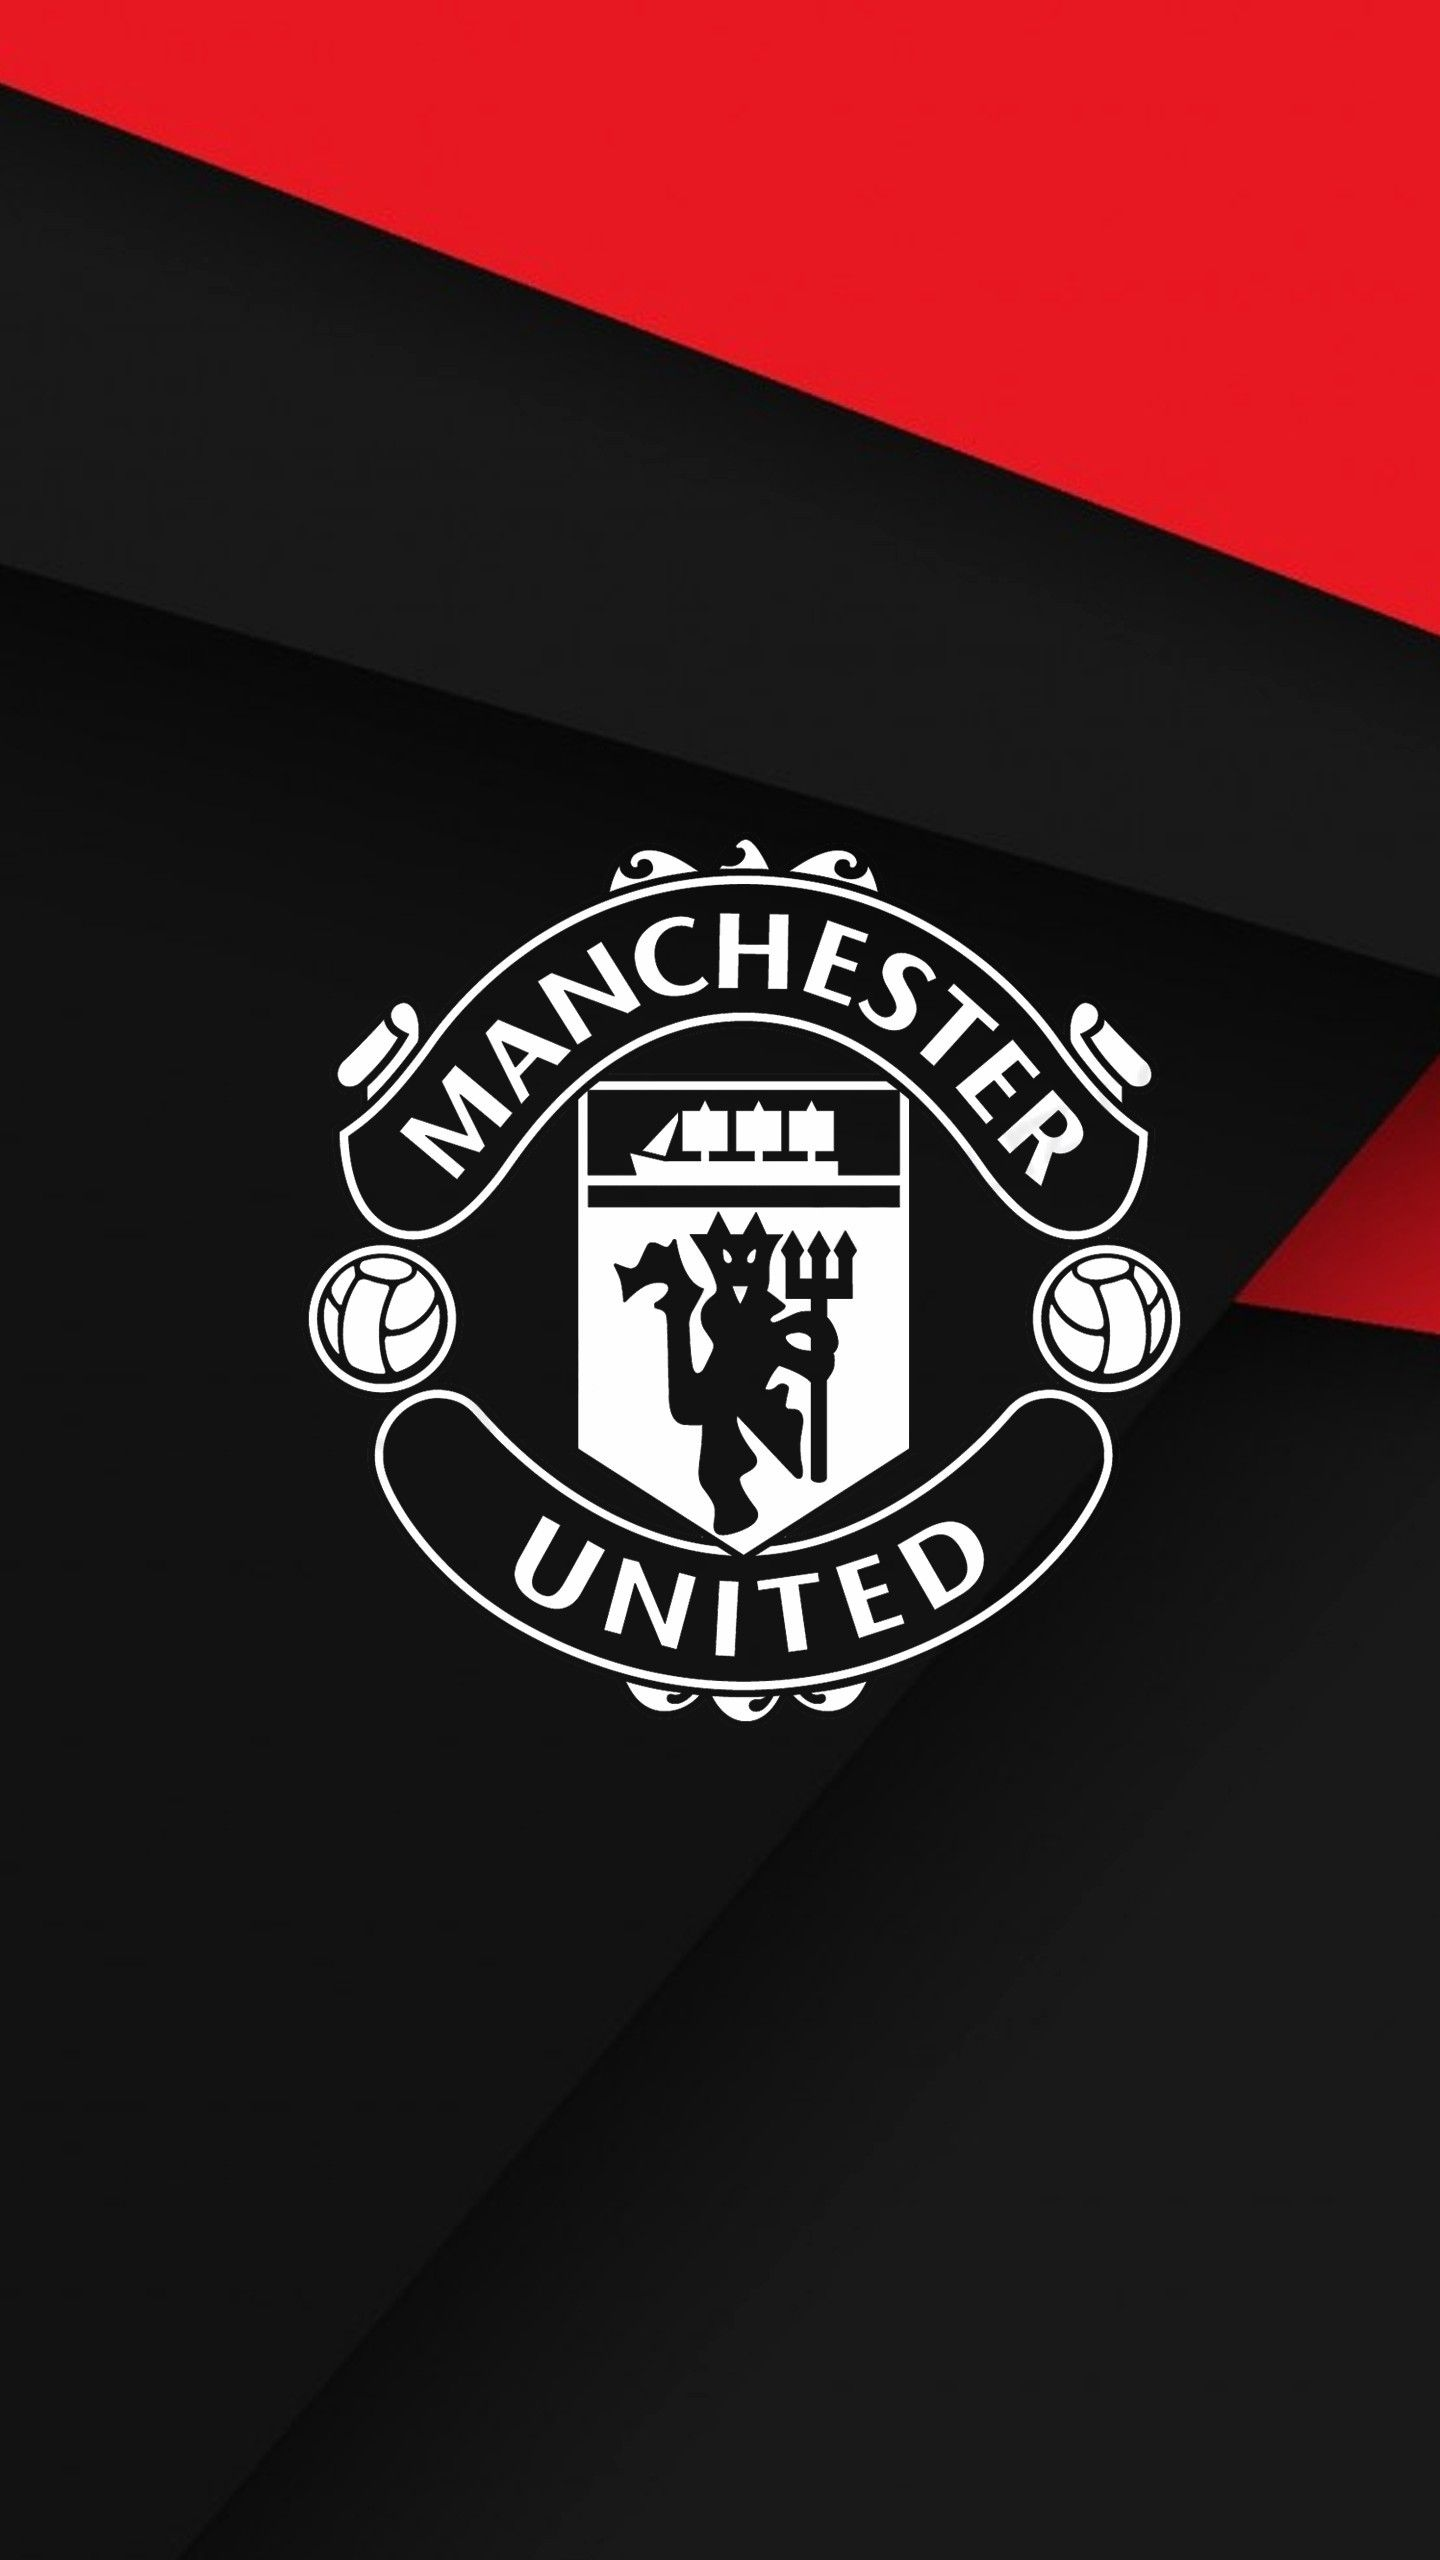 1440x2560 Wallpaper Hd Android Manchester United Related Post Manchester United Logo Manchester United Wallpaper Manchester United Old Trafford